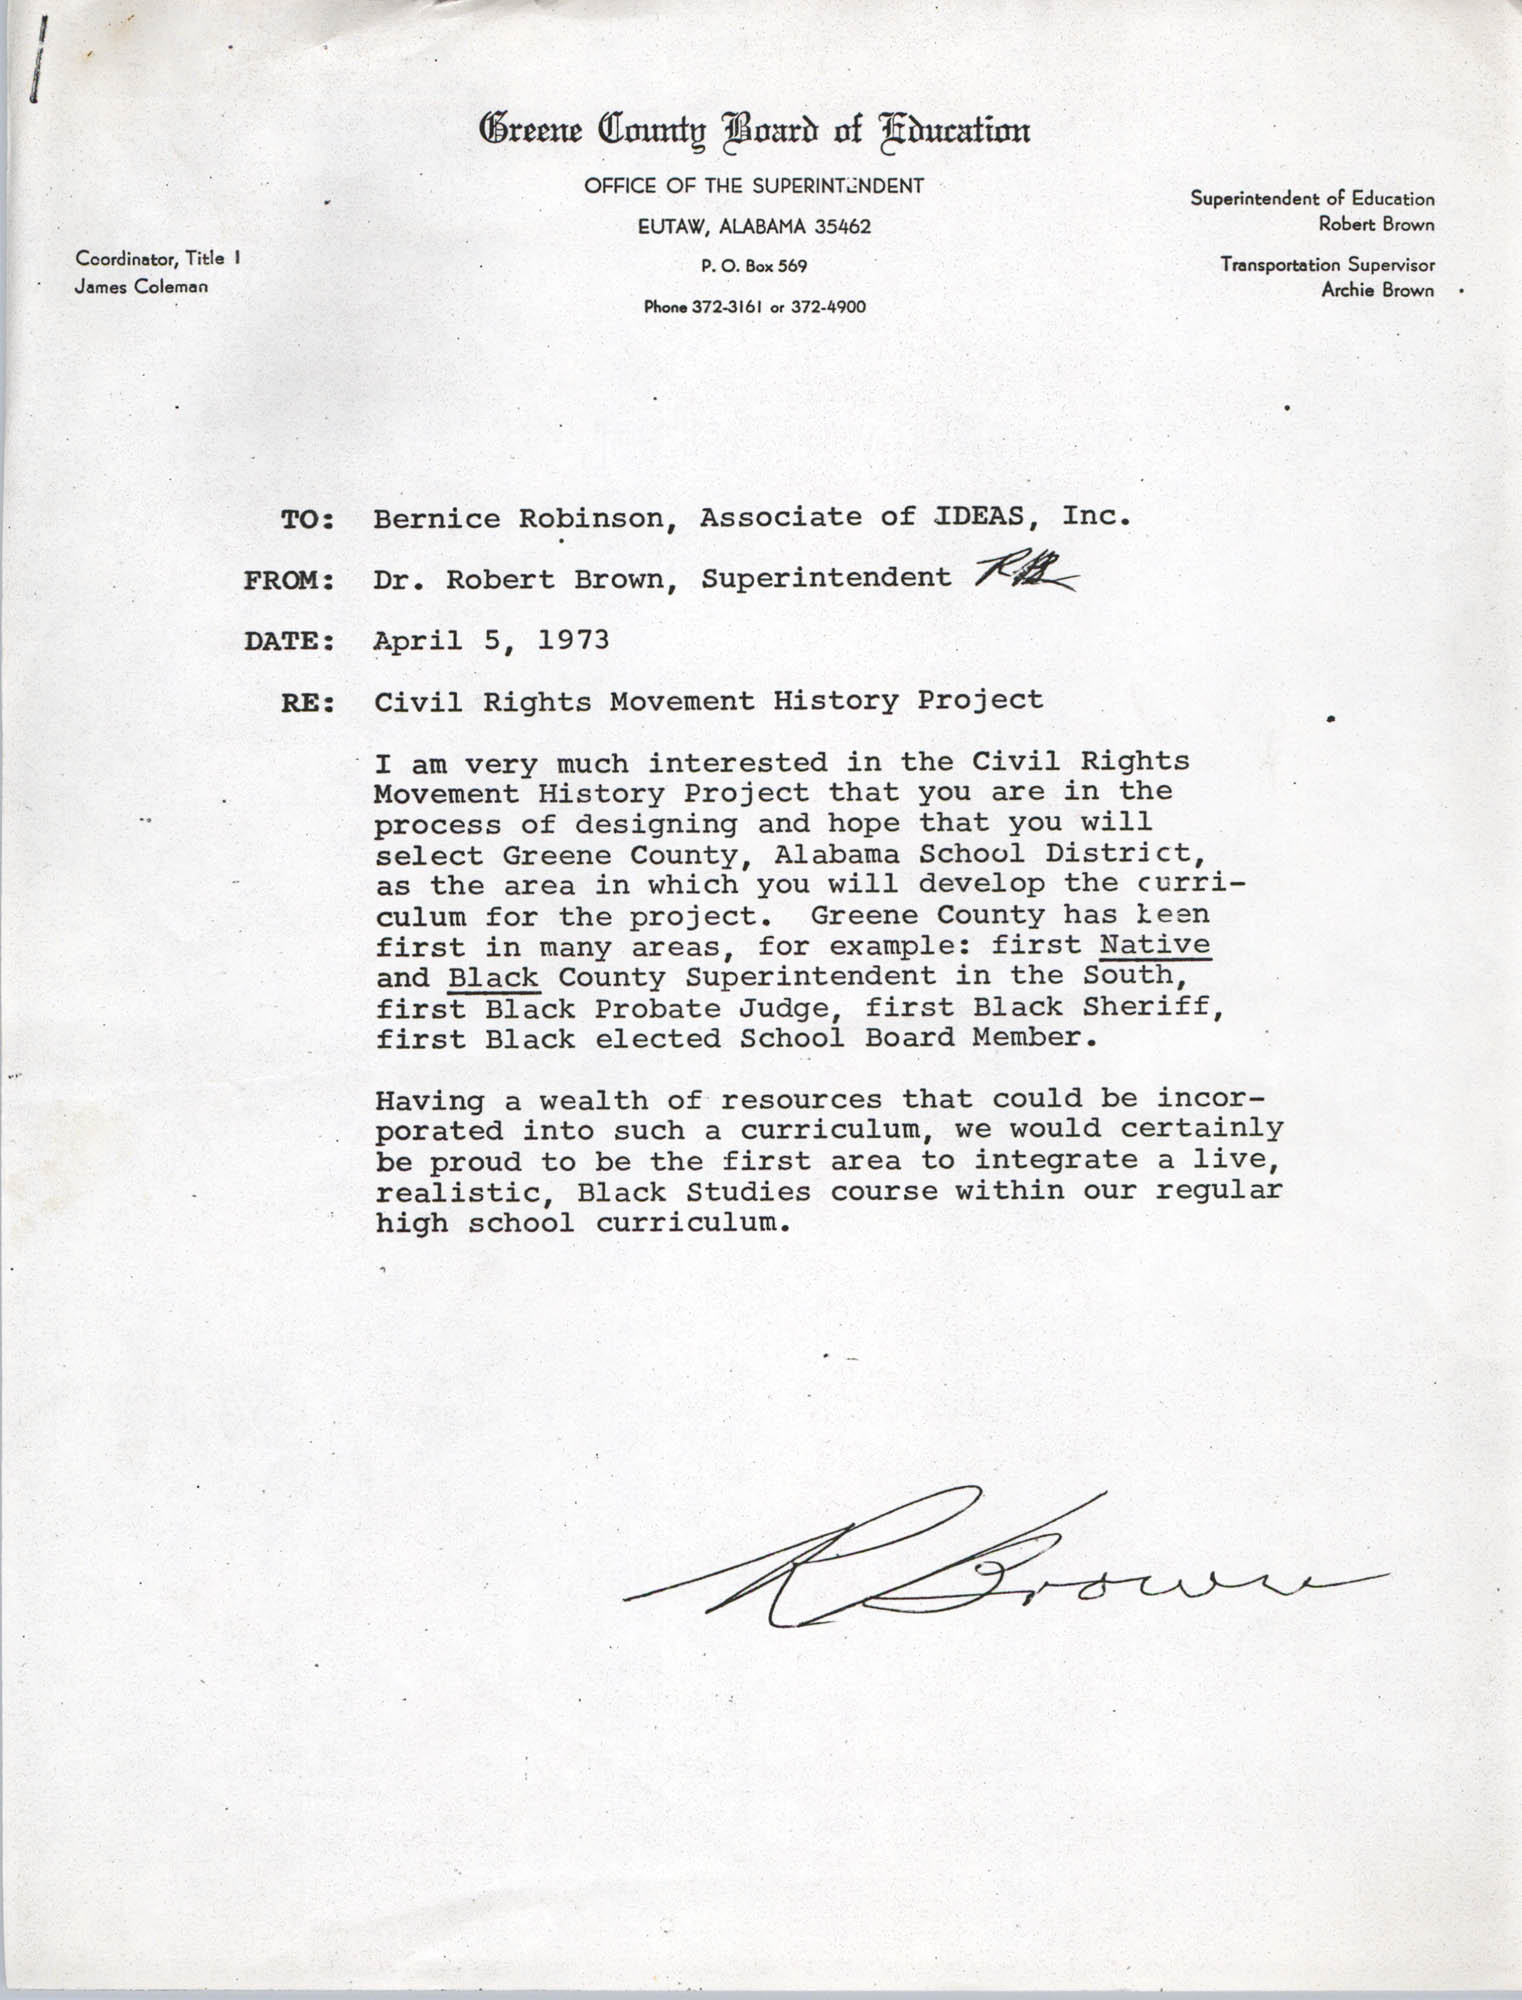 Letter from Robert Brown to Bernice Robinson, April 5, 1973